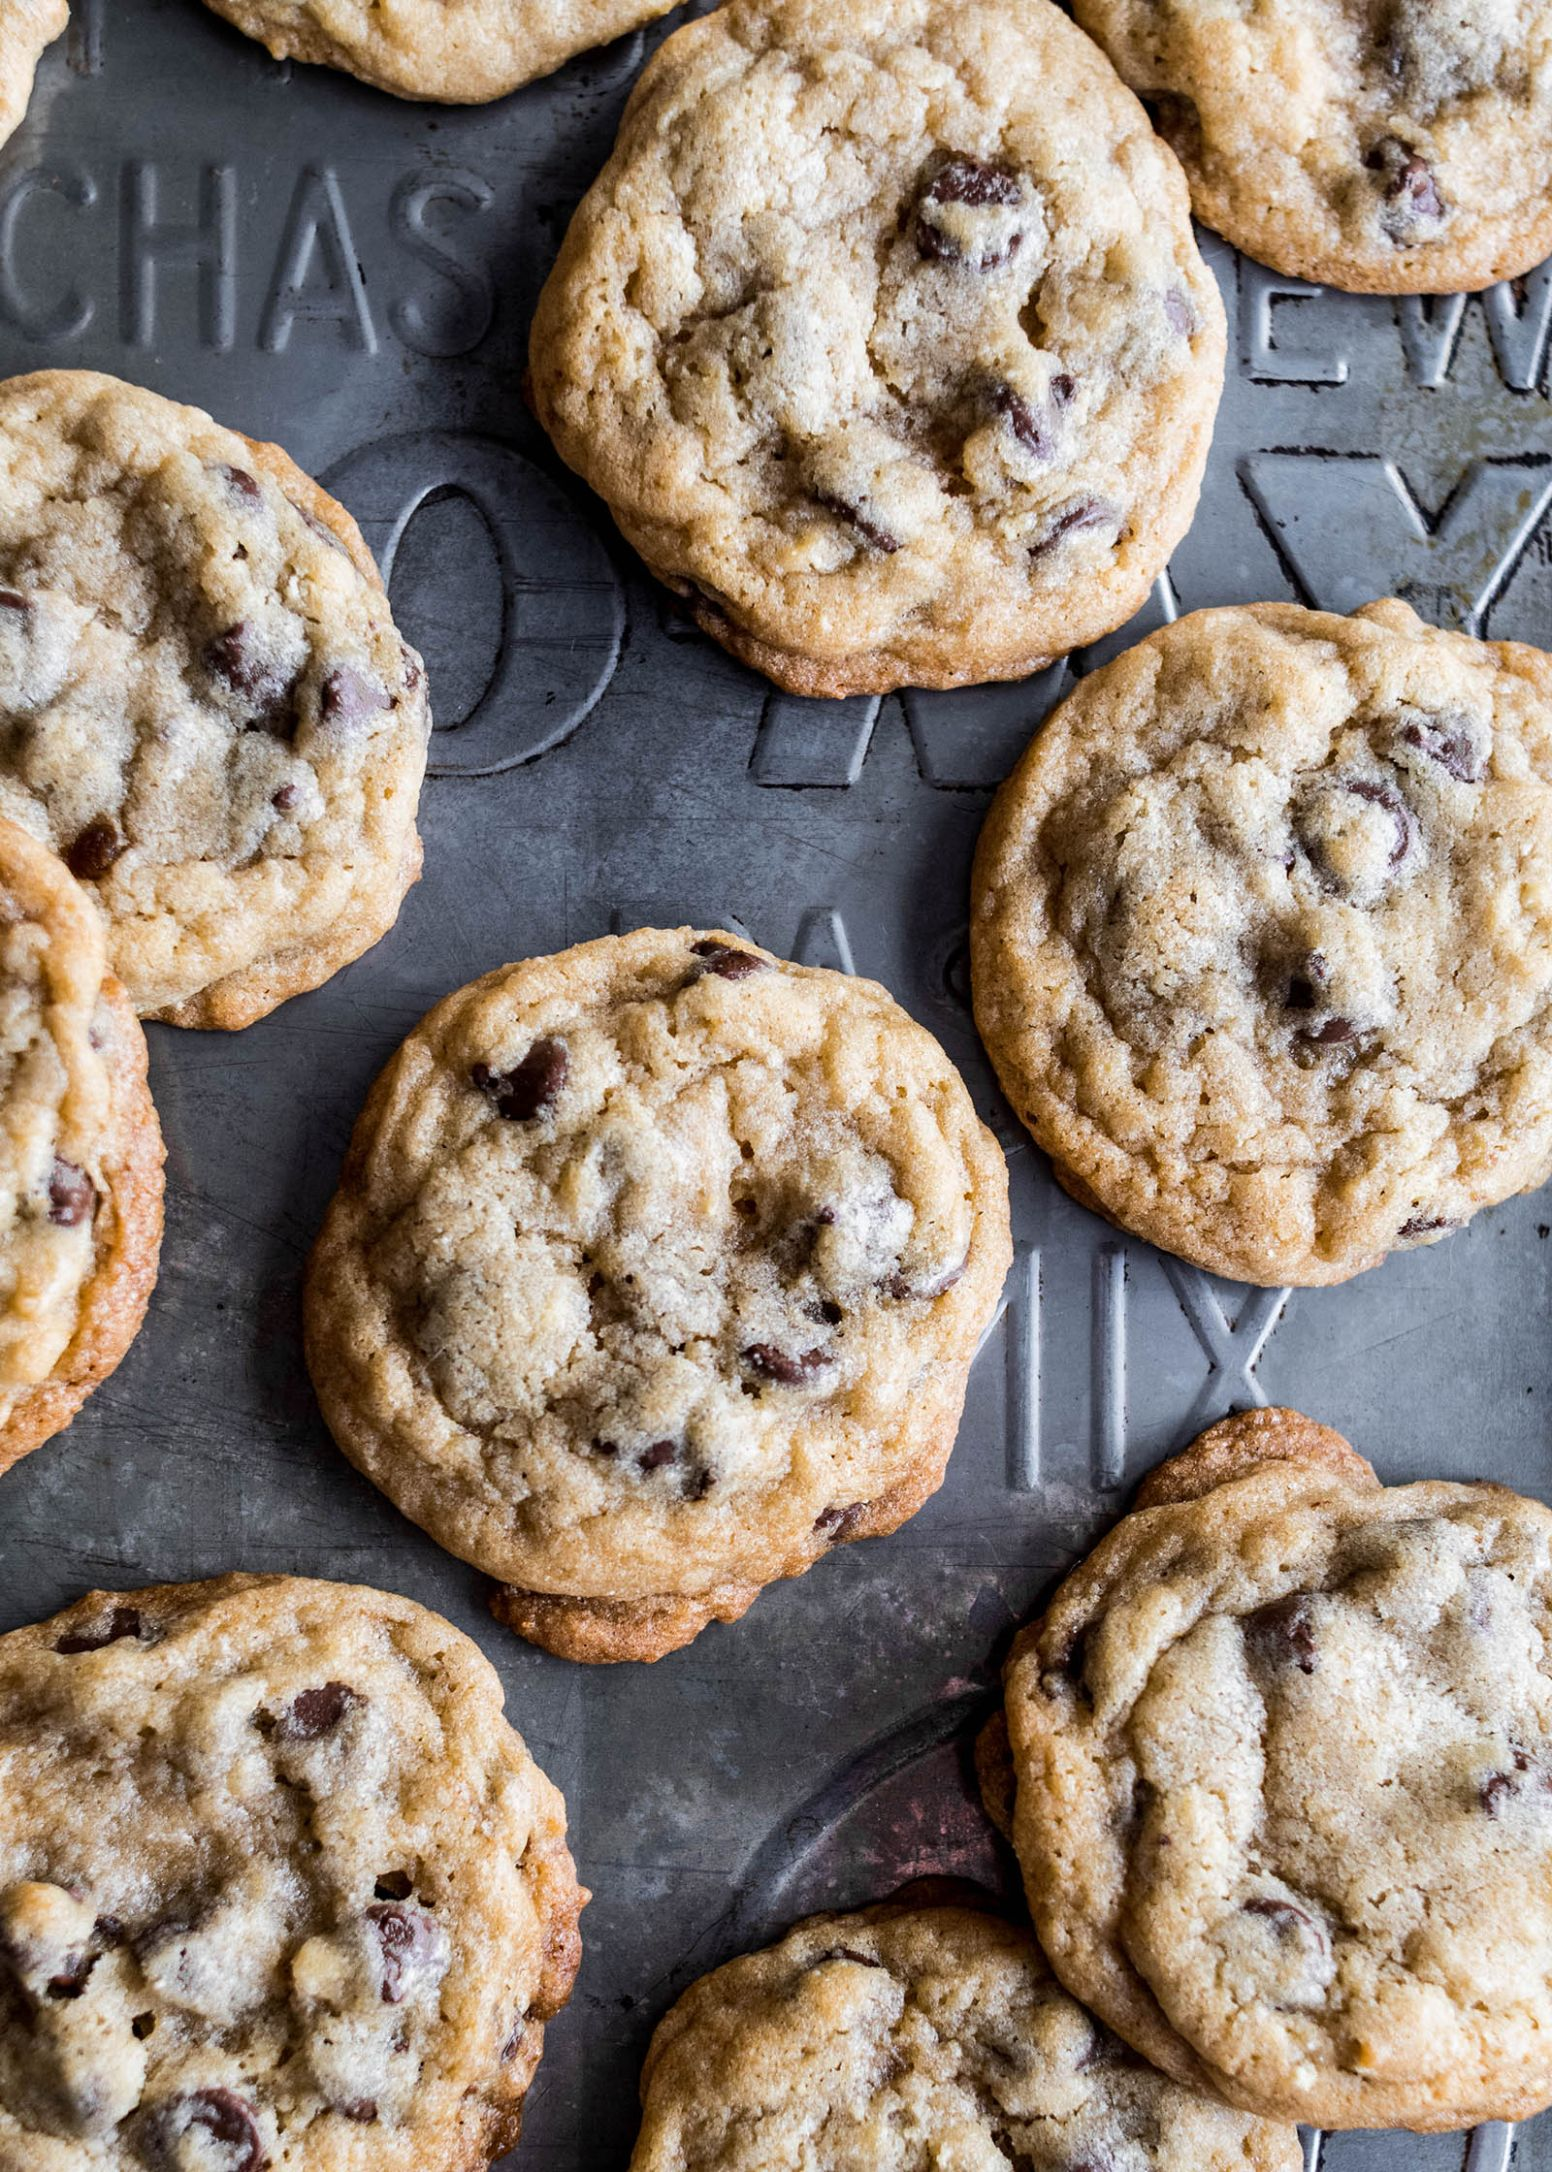 Chocolate Chip Cookies - Recipes Chocolate Chip Cookies